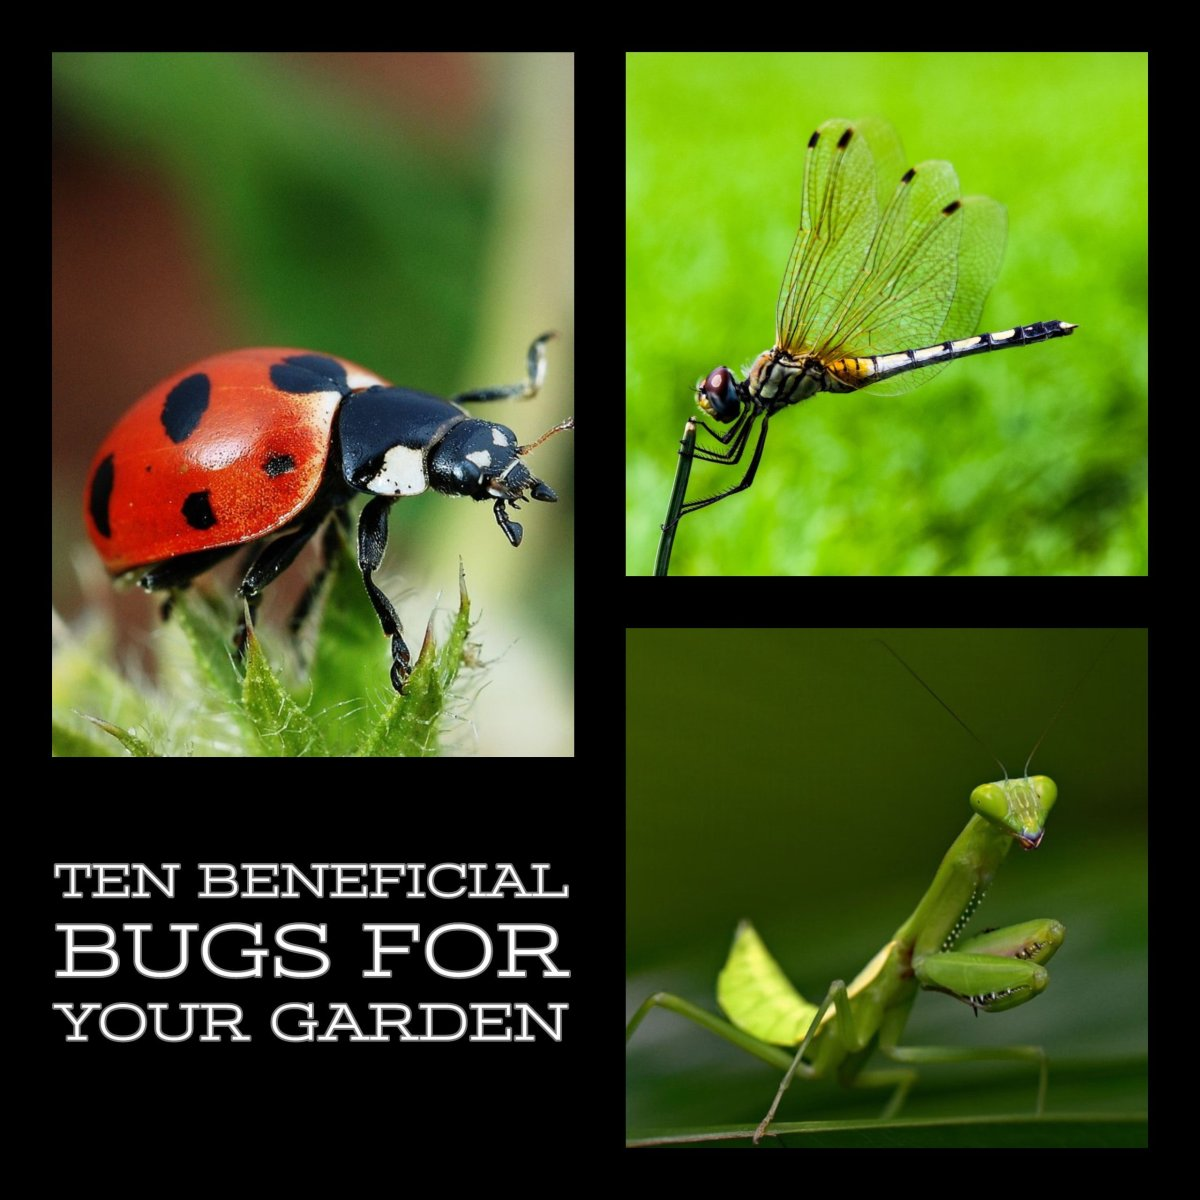 The 10 Most Beneficial Bugs for Your Garden